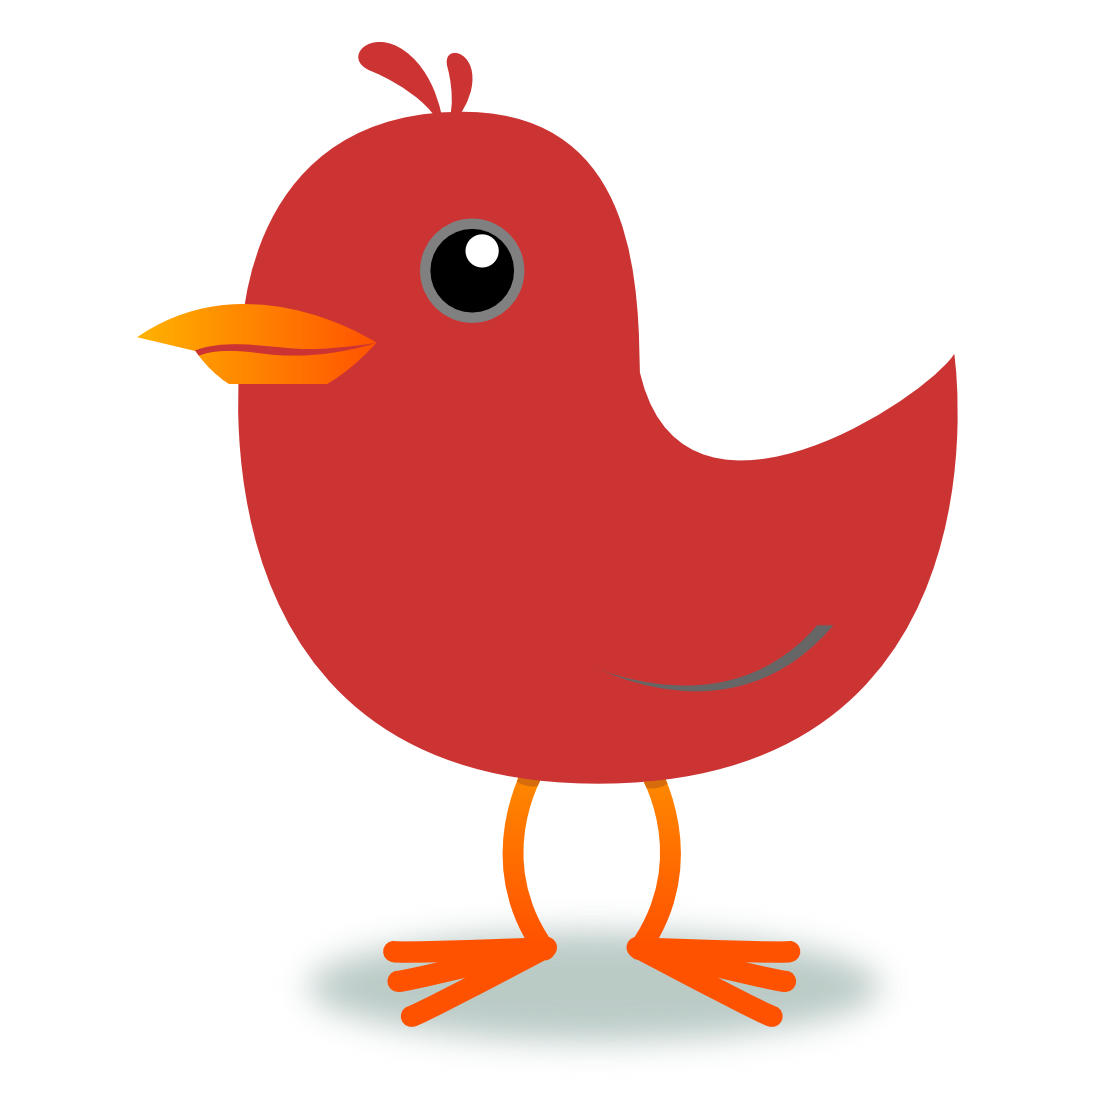 Red Bird Clip Art - Cliparts.co